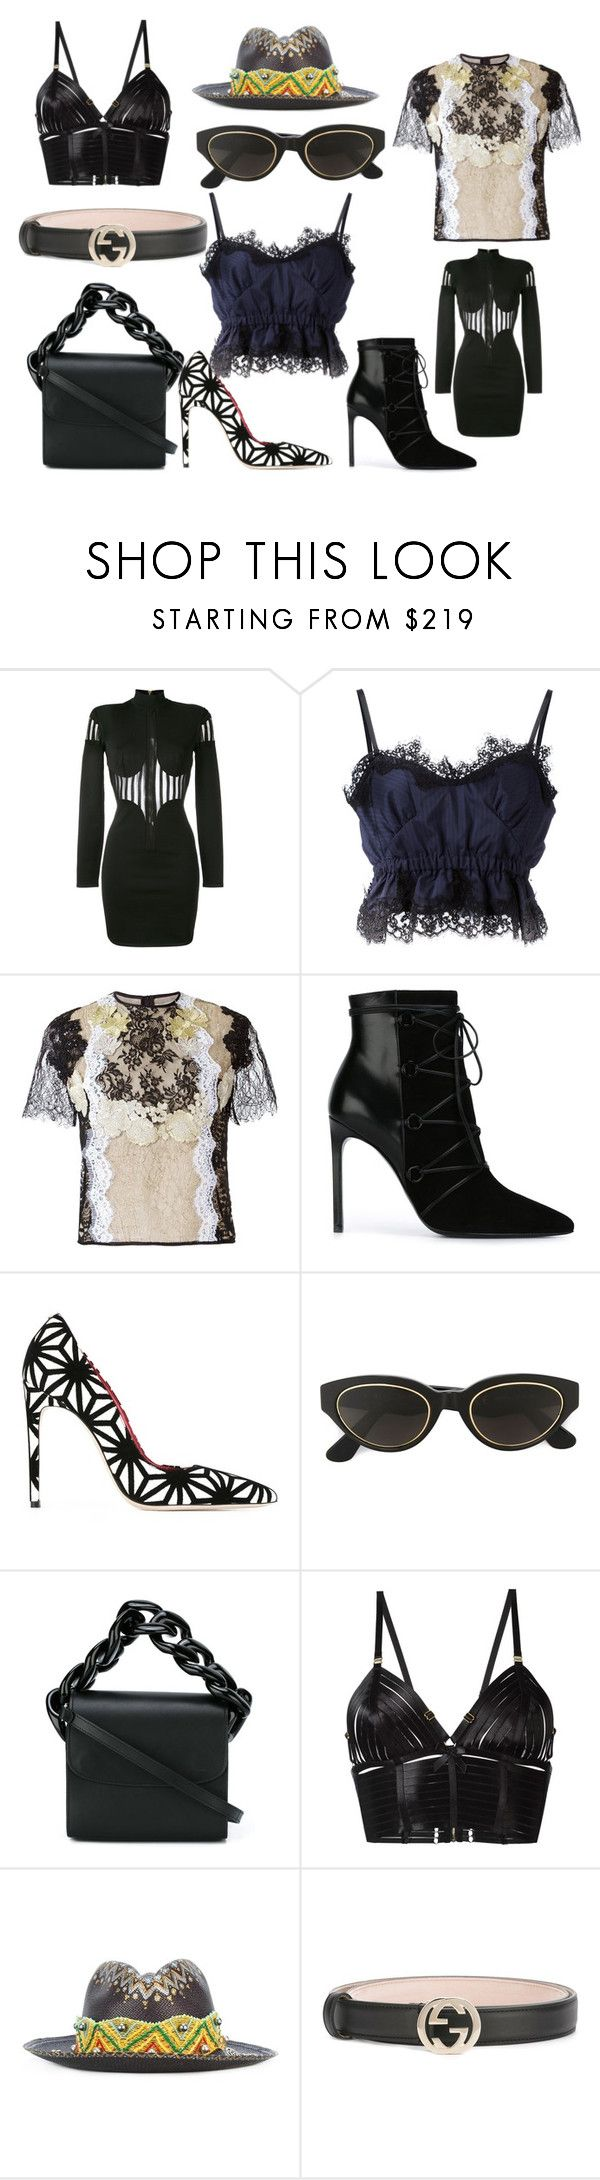 """black collection sale"" by monica022 ❤ liked on Polyvore featuring Balmain, Sacai, Martha Medeiros, Yves Saint Laurent, Dsquared2, RetroSuperFuture, Marques'Almeida, Bordelle, Ibo-Maraca and Gucci"